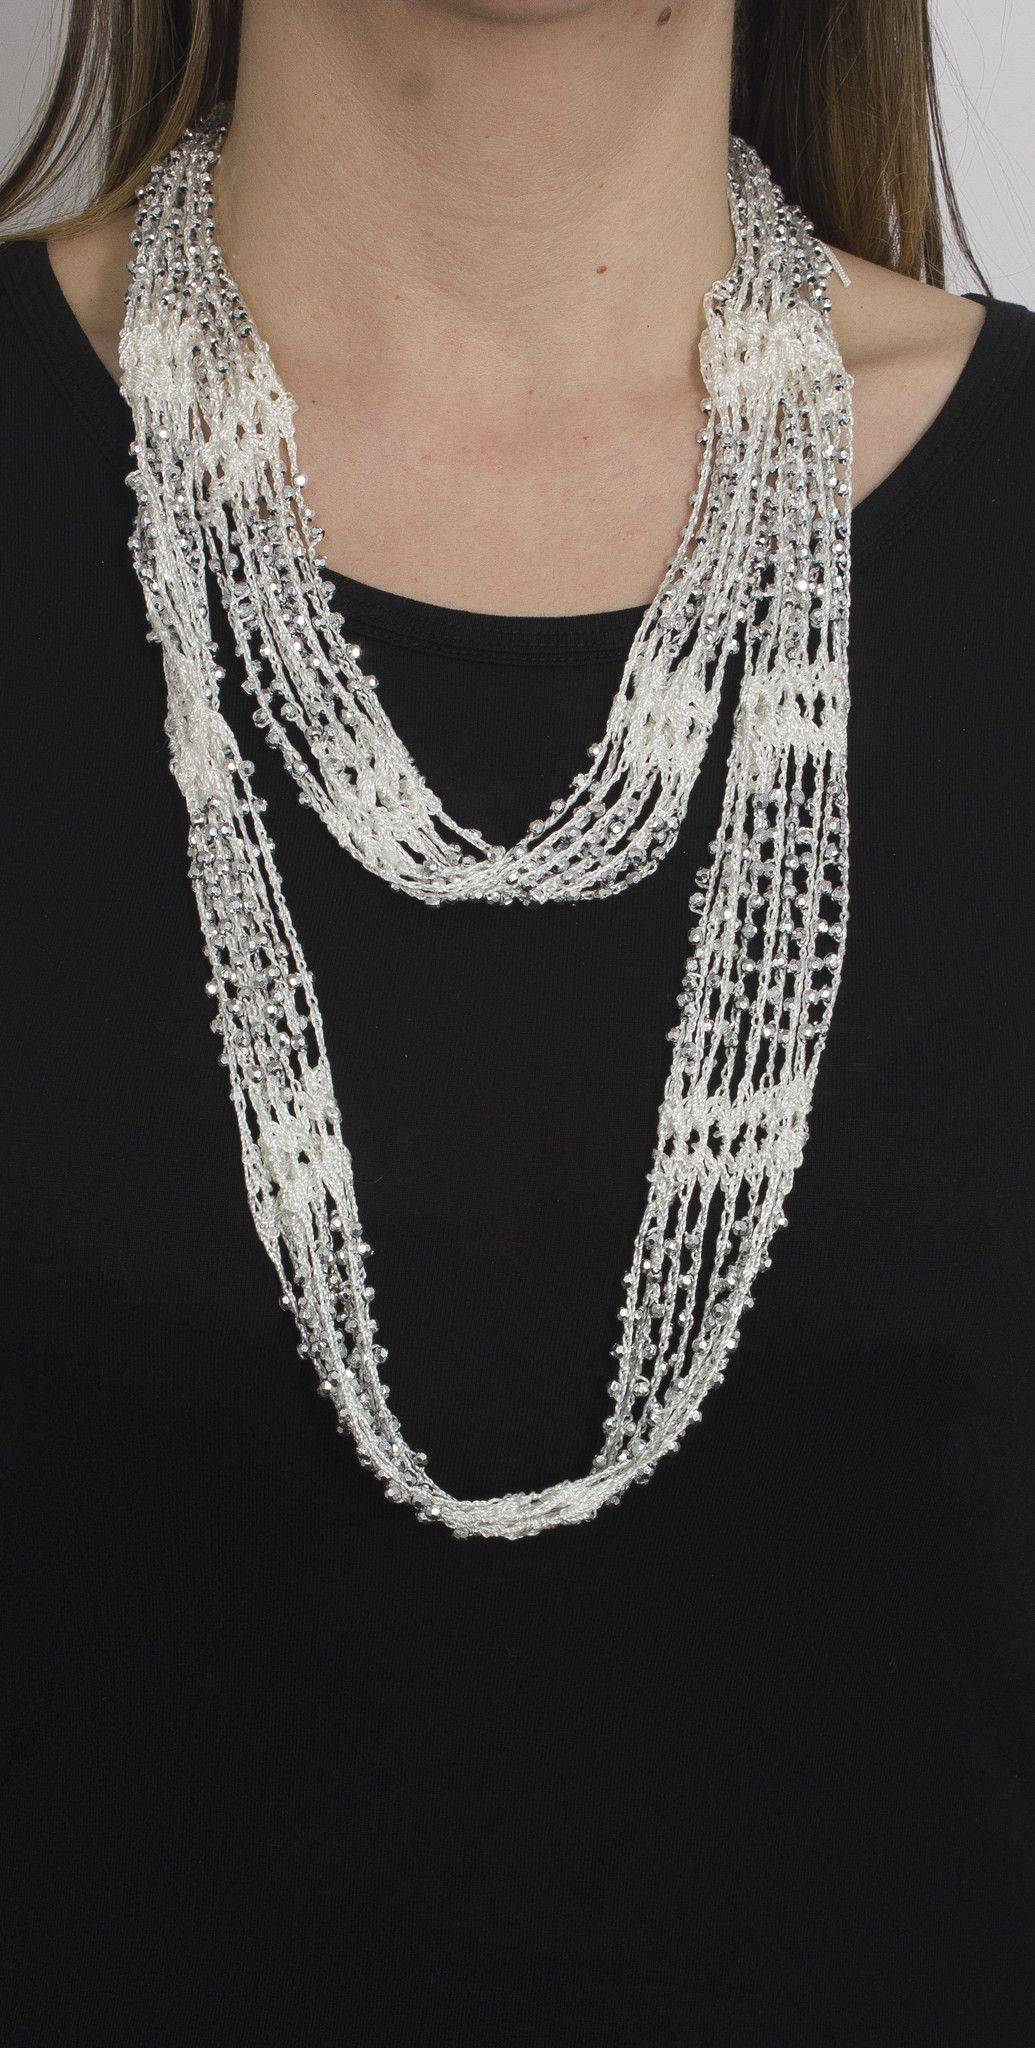 Crochet Beaded Necklace Scarf with Silver Beads | Ketten ...